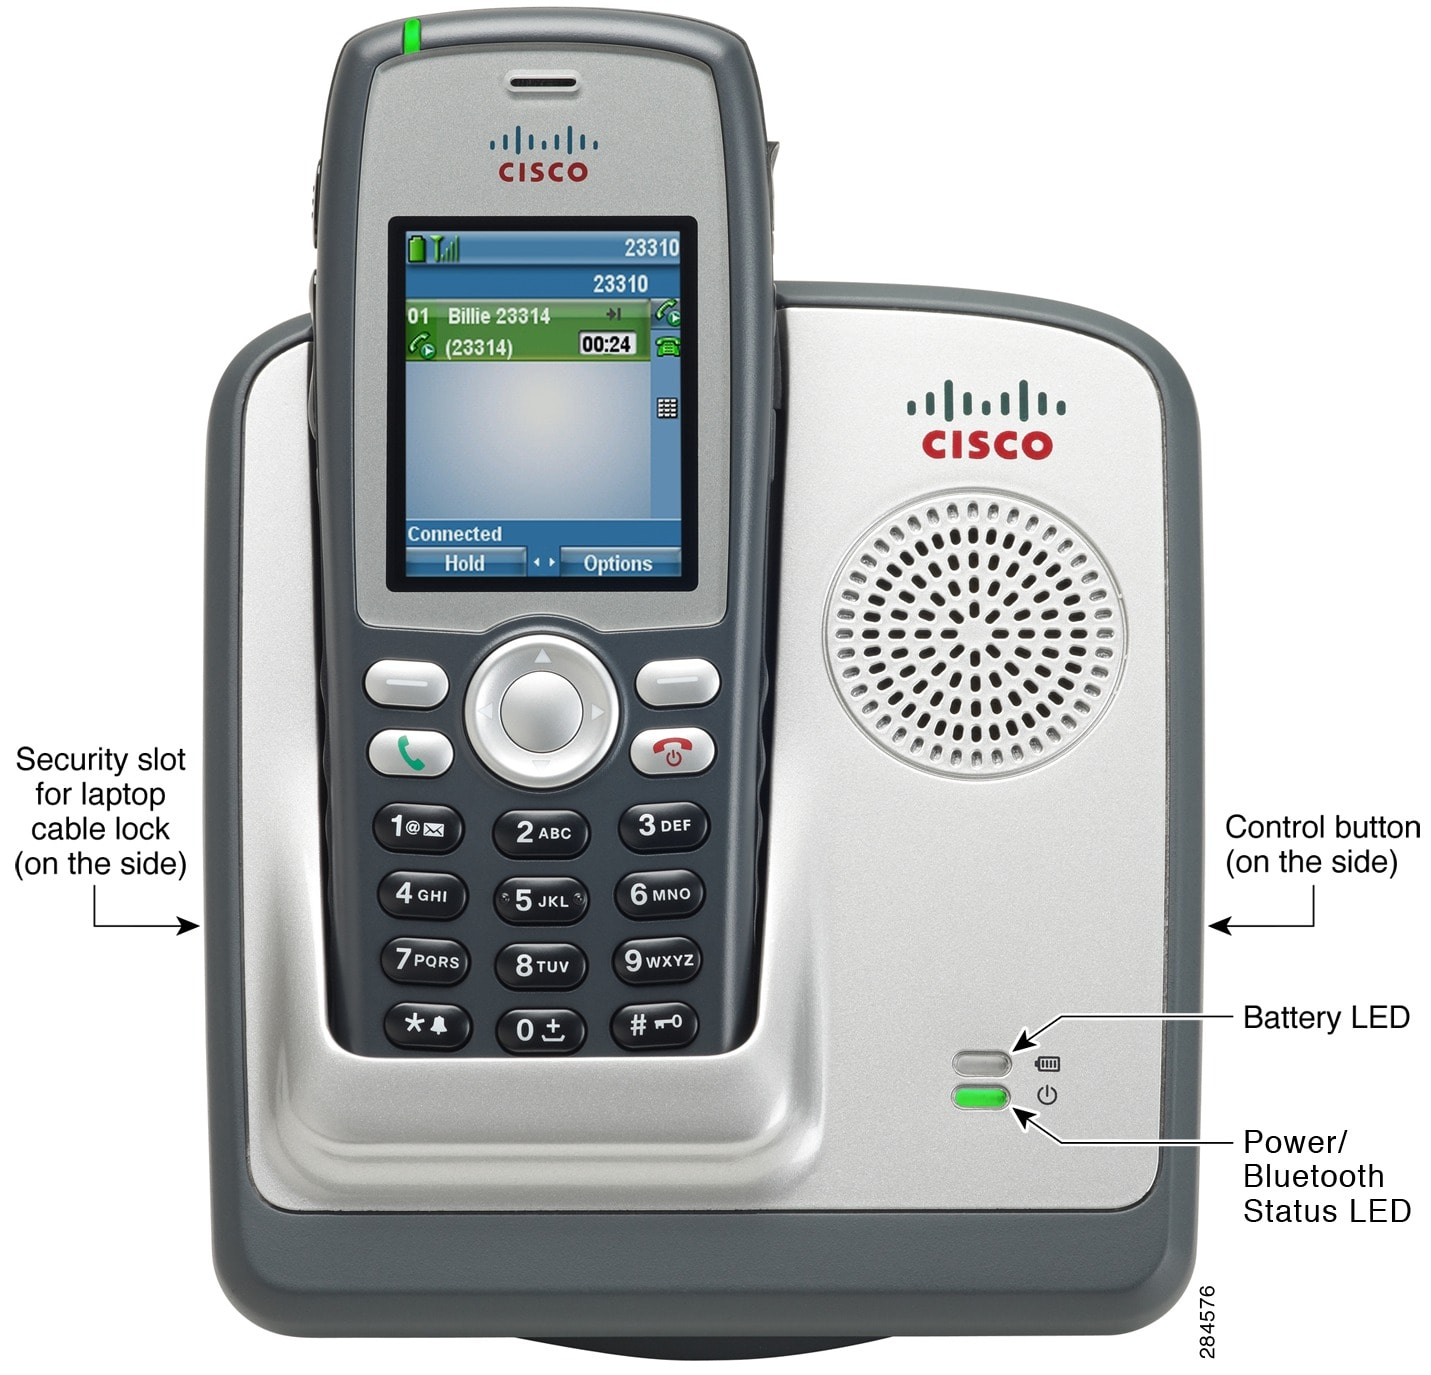 Cisco Unified Wireless Ip Phone 7925g Images